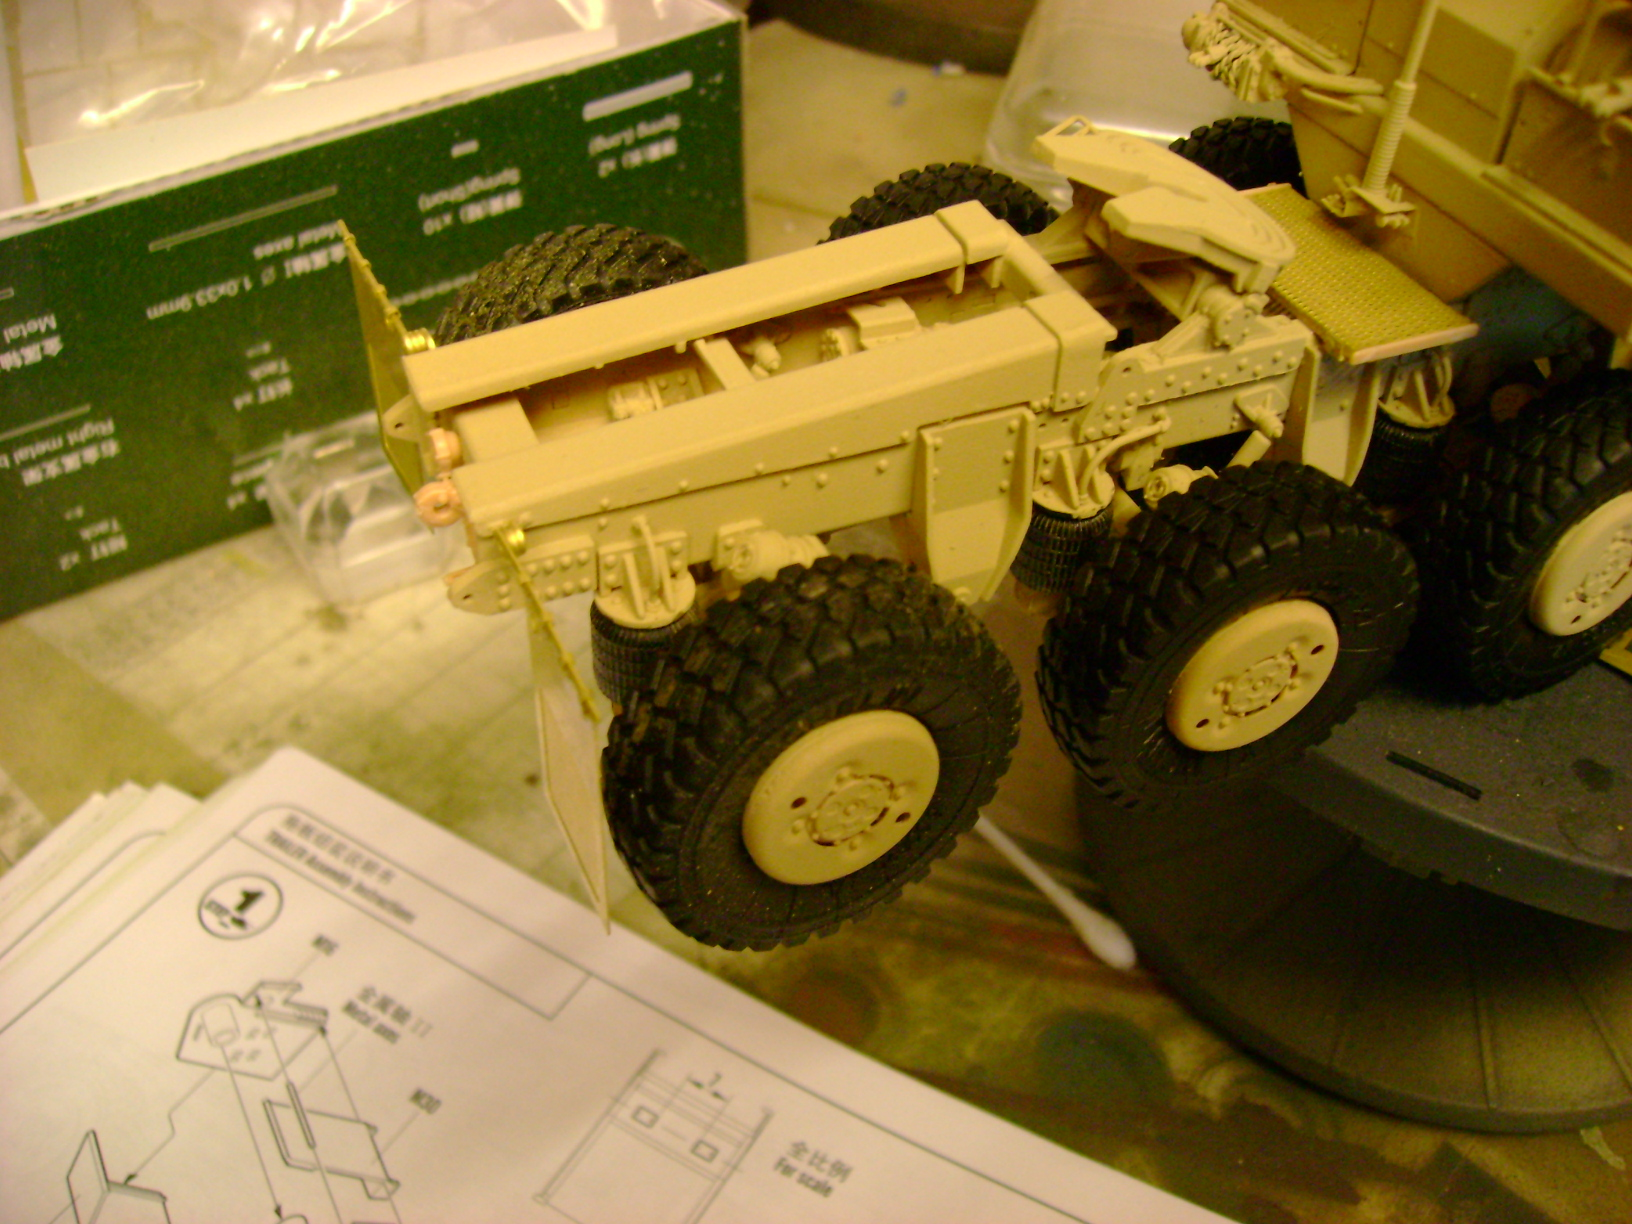 M1070 Truck Tractor & M1000 Semi-Trailer By T-bird!!!!! 1/35 Hobby Boss.Up du01/02.... - Page 4 115ukr